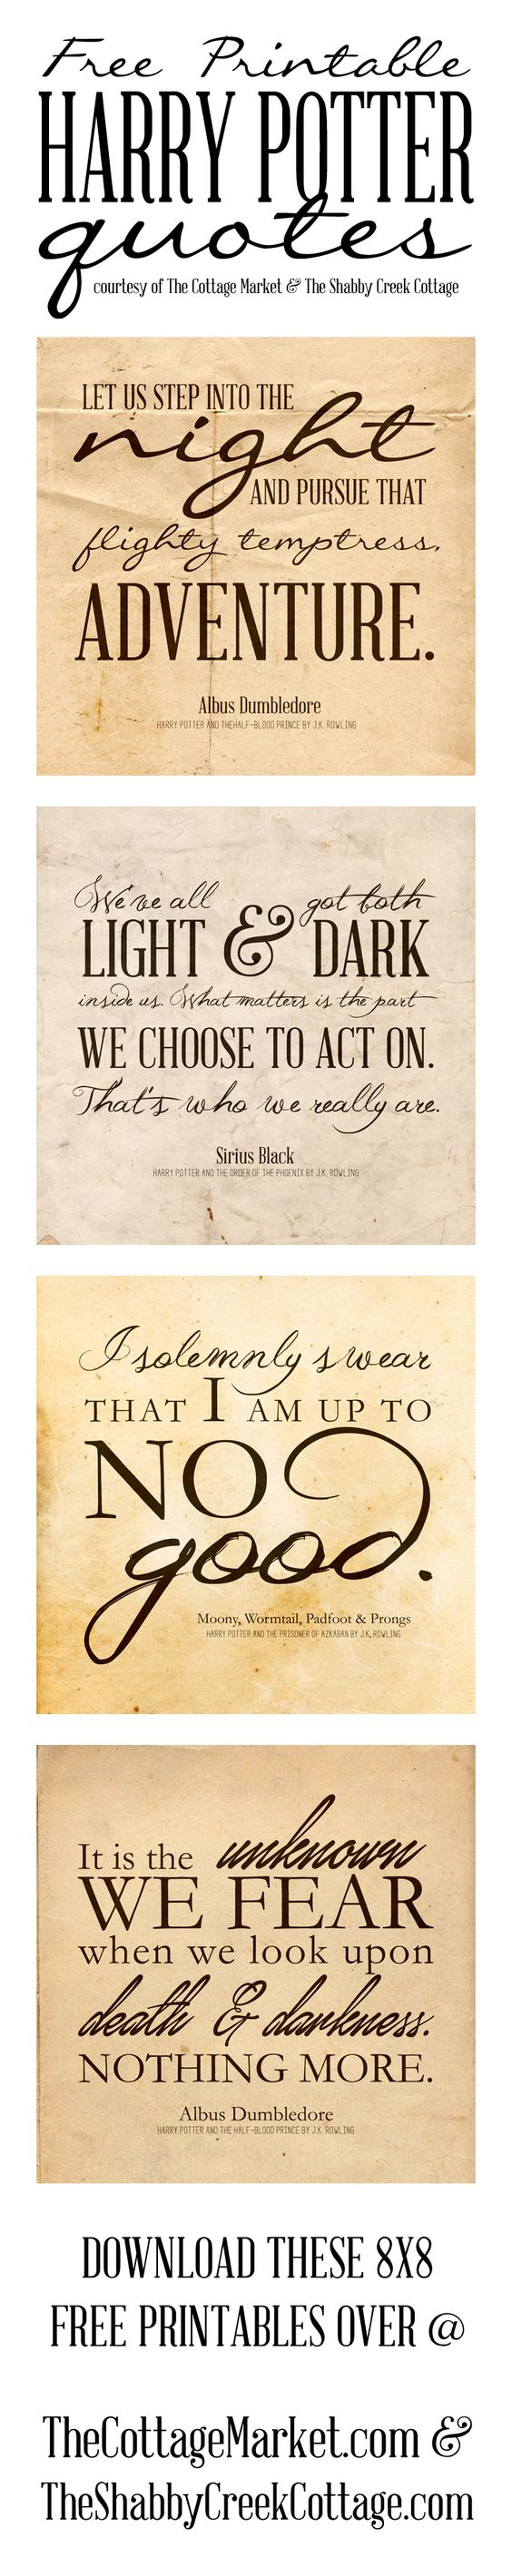 These quotes could be printed off, framed and given as a Christmas gift to a Harry Potter fan!